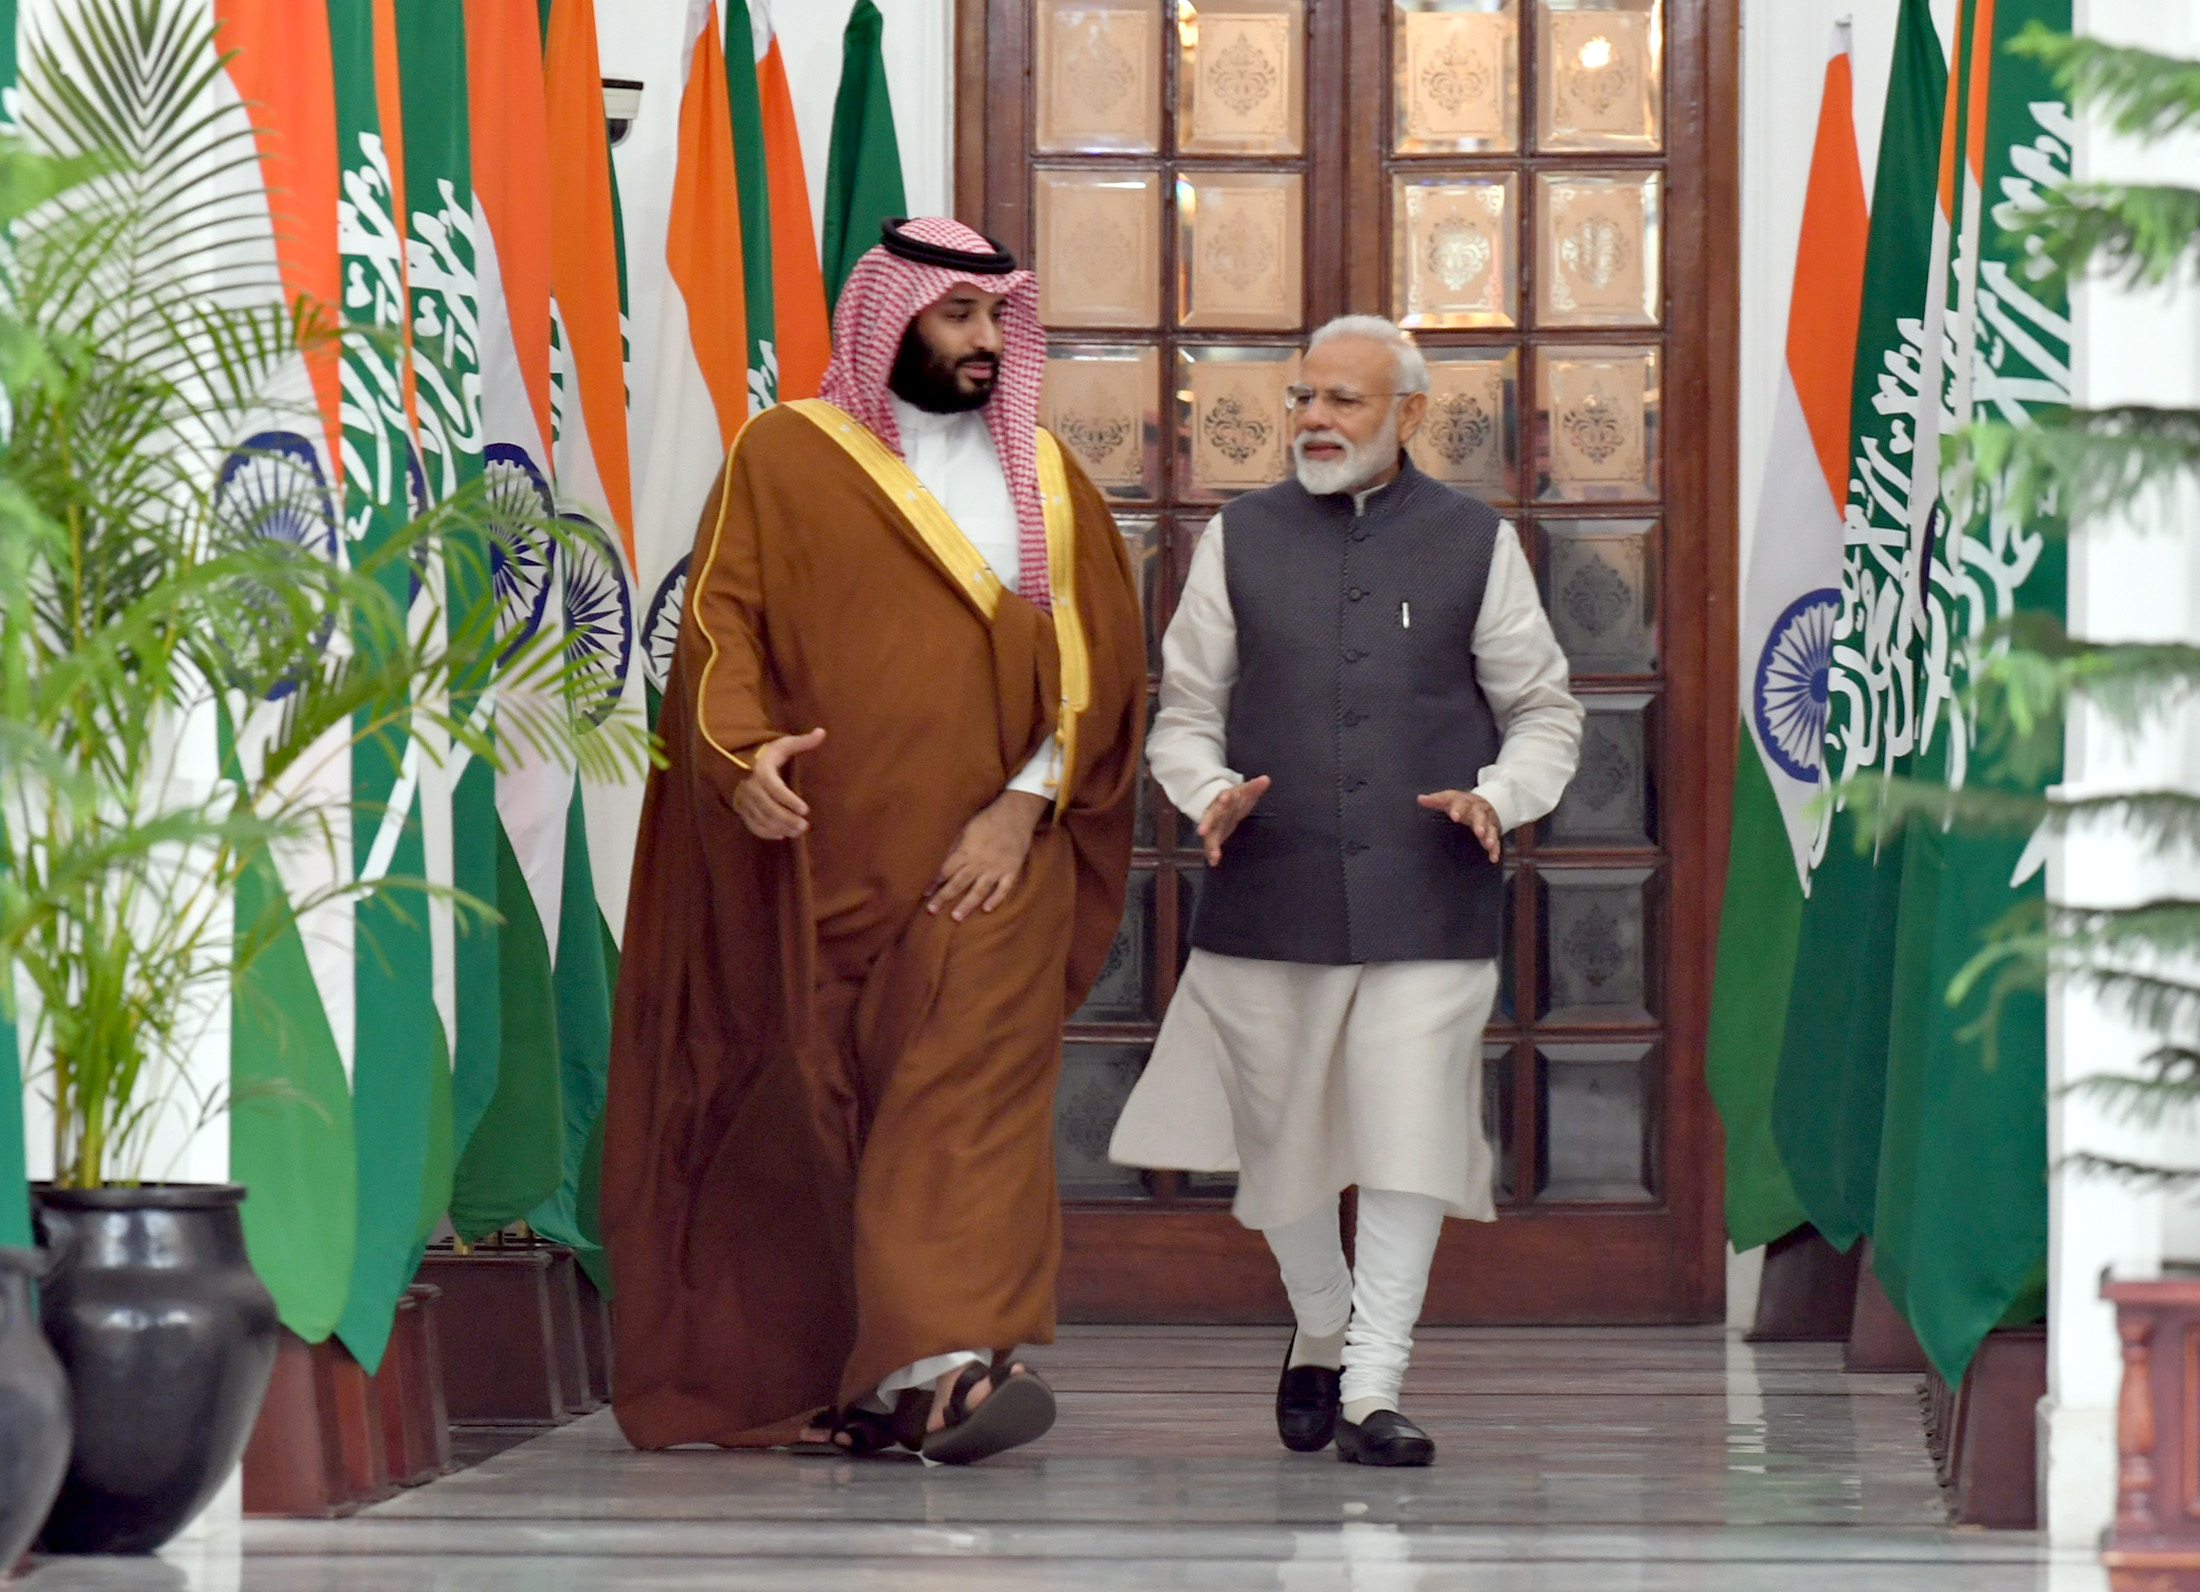 Prime Minister Narendra Modi with the Crown Prince, Vice President of the Council of Ministers of Defence of the Kingdom of Saudi Arabia, Prince Mohammed Bin Salman Bin Abdulaziz Al-Saud, at Hyderabad House, in New Delhi on February 20, 2019. Photo courtesy: PMO